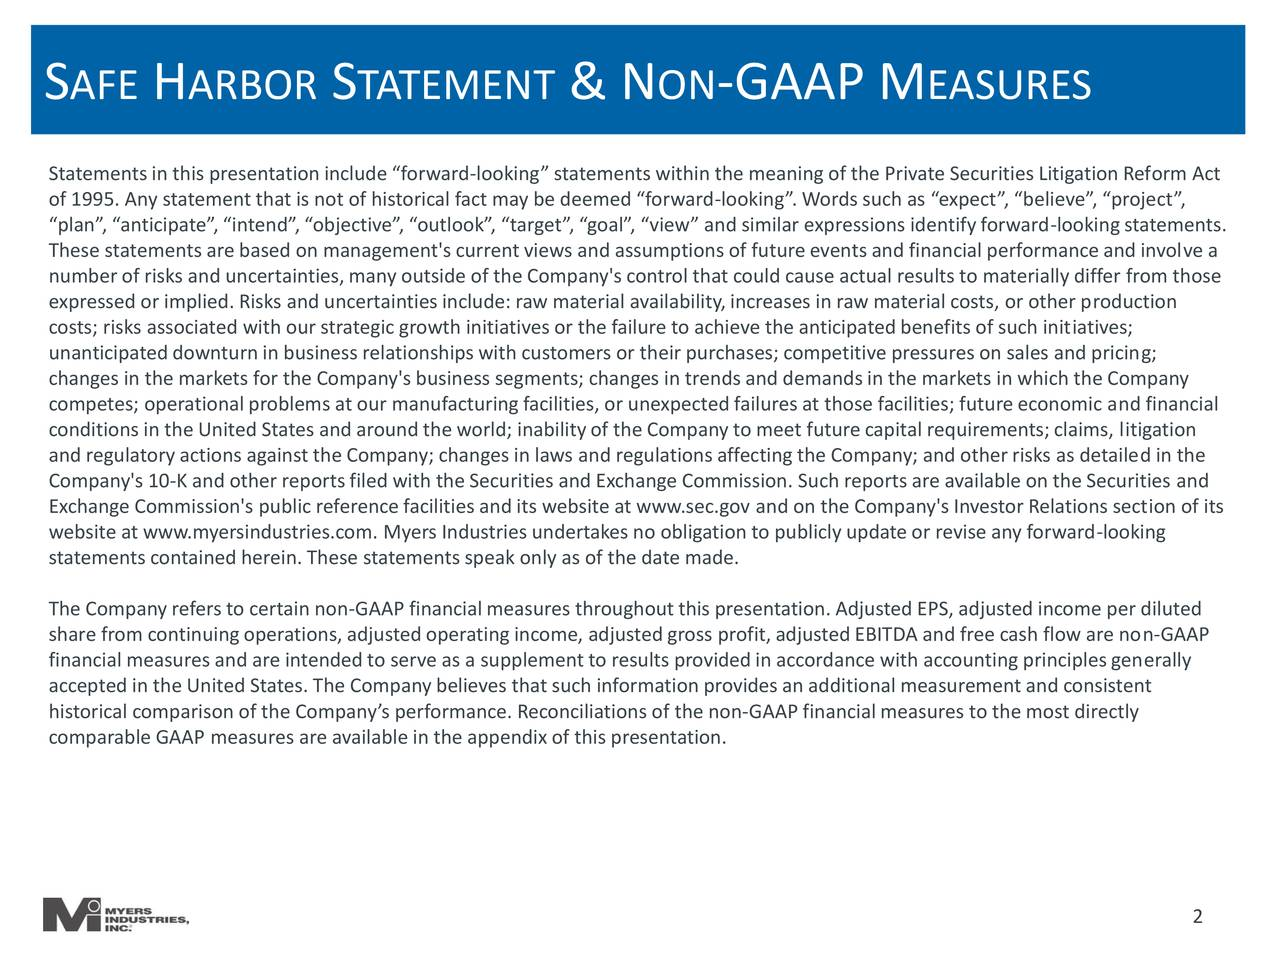 """Statementsin this presentation include """"forward-looking"""" statements within the meaning of the Private Securities Litigation Reform Act """"plan"""", """"anticipate"""", """"intend"""",""""objective"""", """"outlook"""", """"target"""", """"goal"""", """"view"""" and similar expressions identifyforward-lookingstatements. These statements are based on management's current views and assumptions of future events and financial performance and involve a number of risks and uncertainties, many outside of the Company's control that could cause actual results to materially differ from those expressed or implied. Risks and uncertainties include: raw material availability,increases in raw material costs, or other production costs; risks associated with our strategic growth initiatives or the failure to achieve the anticipatedbenefits of such initiatives; changes in the markets for the Company's business segments; changes in trends and demandsin the markets in which the Company; competes; operationalproblems at our manufacturingfacilities, or unexpected failures at those facilities; future economic and financial conditions in the United States and around the world; inabilityof the Company to meet future capital requirements; claims, litigation and regulatoryactions against the Company; changes in laws and regulations affectingthe Company; and other risks as detailed in the Company's 10-K and other reportsfiled with the Securities and Exchange Commission. Such reports are available on the Securities and website at www.myersindustries.com. Myers Industries undertakes no obligation to publicly update or revise any forward-lookingon of its statements contained herein.These statements speak only as of the date made. The Company refers to certain non-GAAP financial measures throughoutthis presentation. Adjusted EPS, adjusted income per diluted share from continuingoperations, adjustedoperatingincome, adjusted gross profit,adjusted EBITDA and free cash flow are non-GAAP accepted in the United States. The Company believes that such """